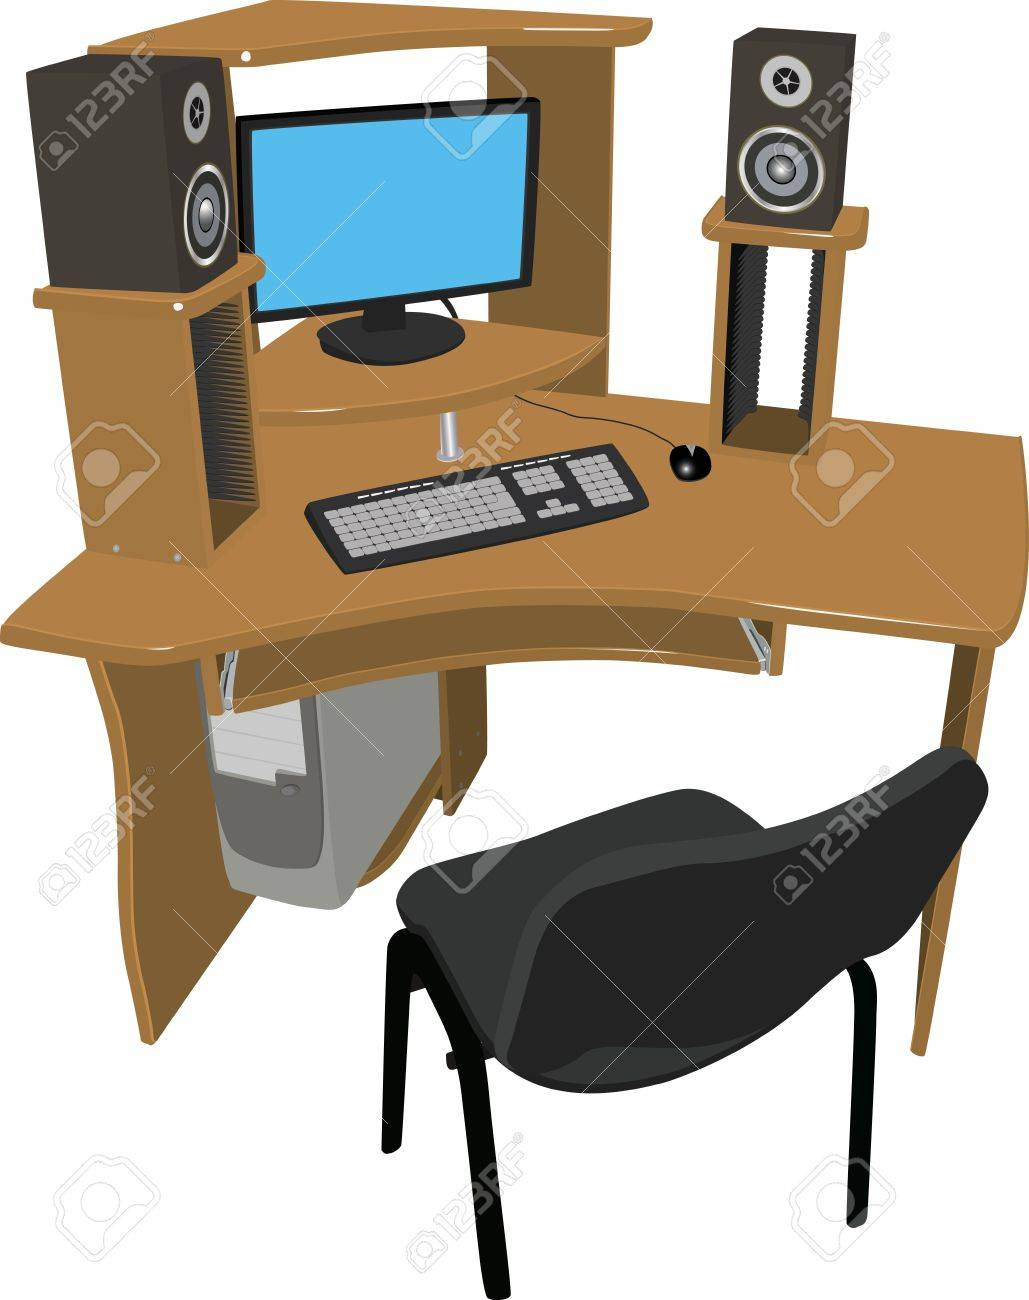 A place for work and leisure  Wooden table with shelves for DVD discs on which there is a computer and speakers on a white background Stock Vector - 12873869